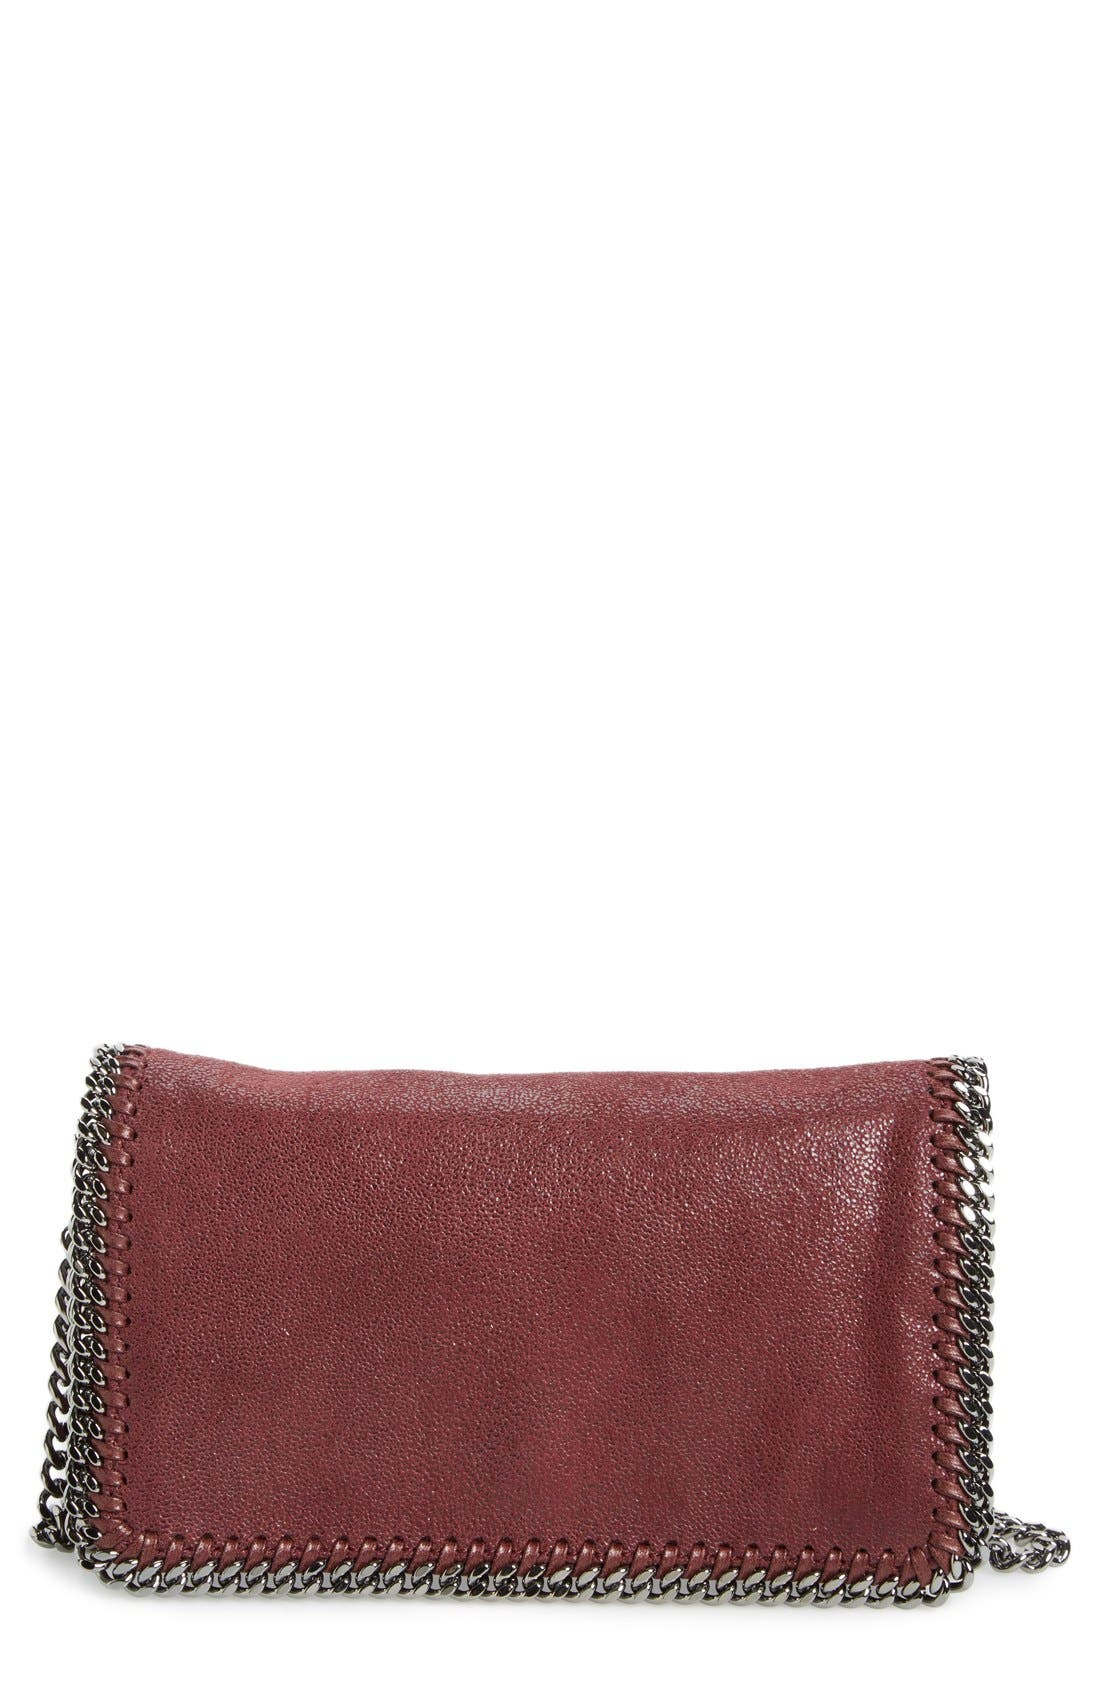 STELLA MCCARTNEY 'Falabella - Shaggy Deer' Faux Leather